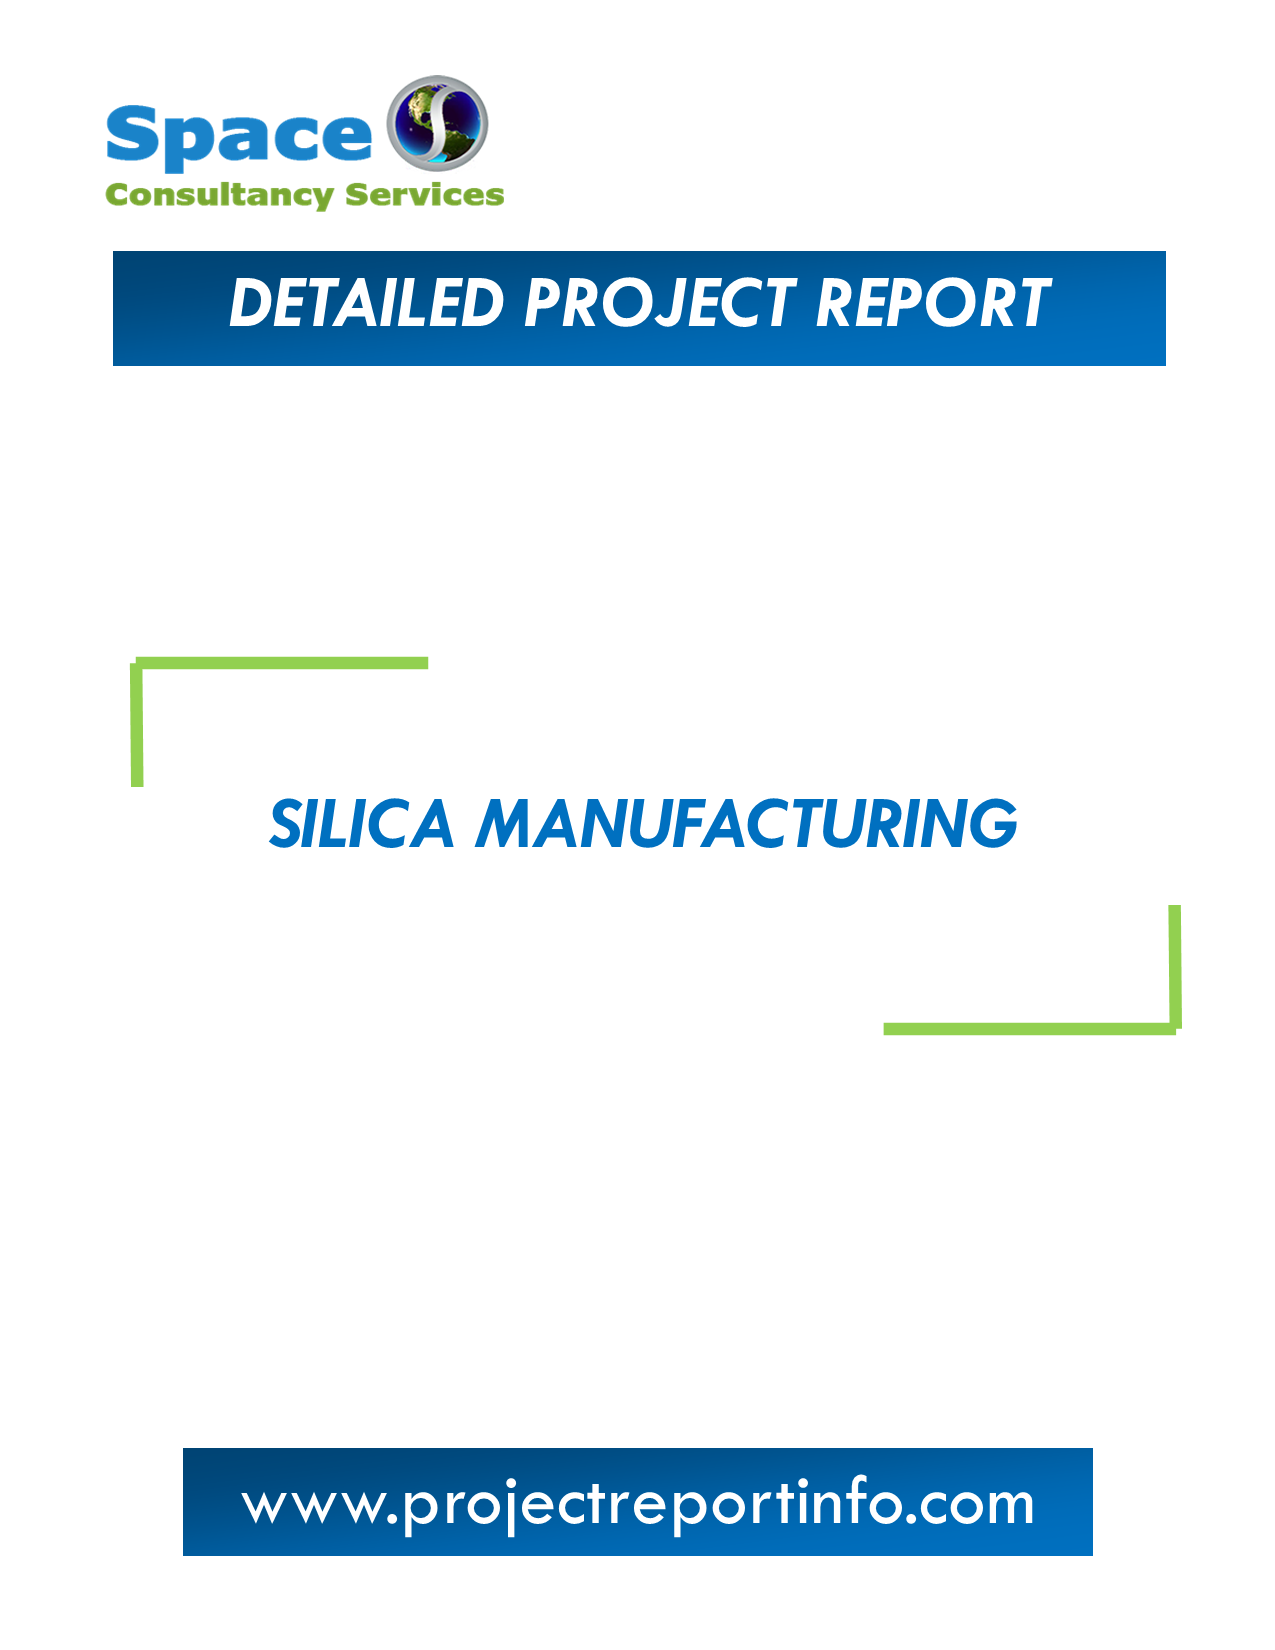 Project Report on Silica Manufacturing